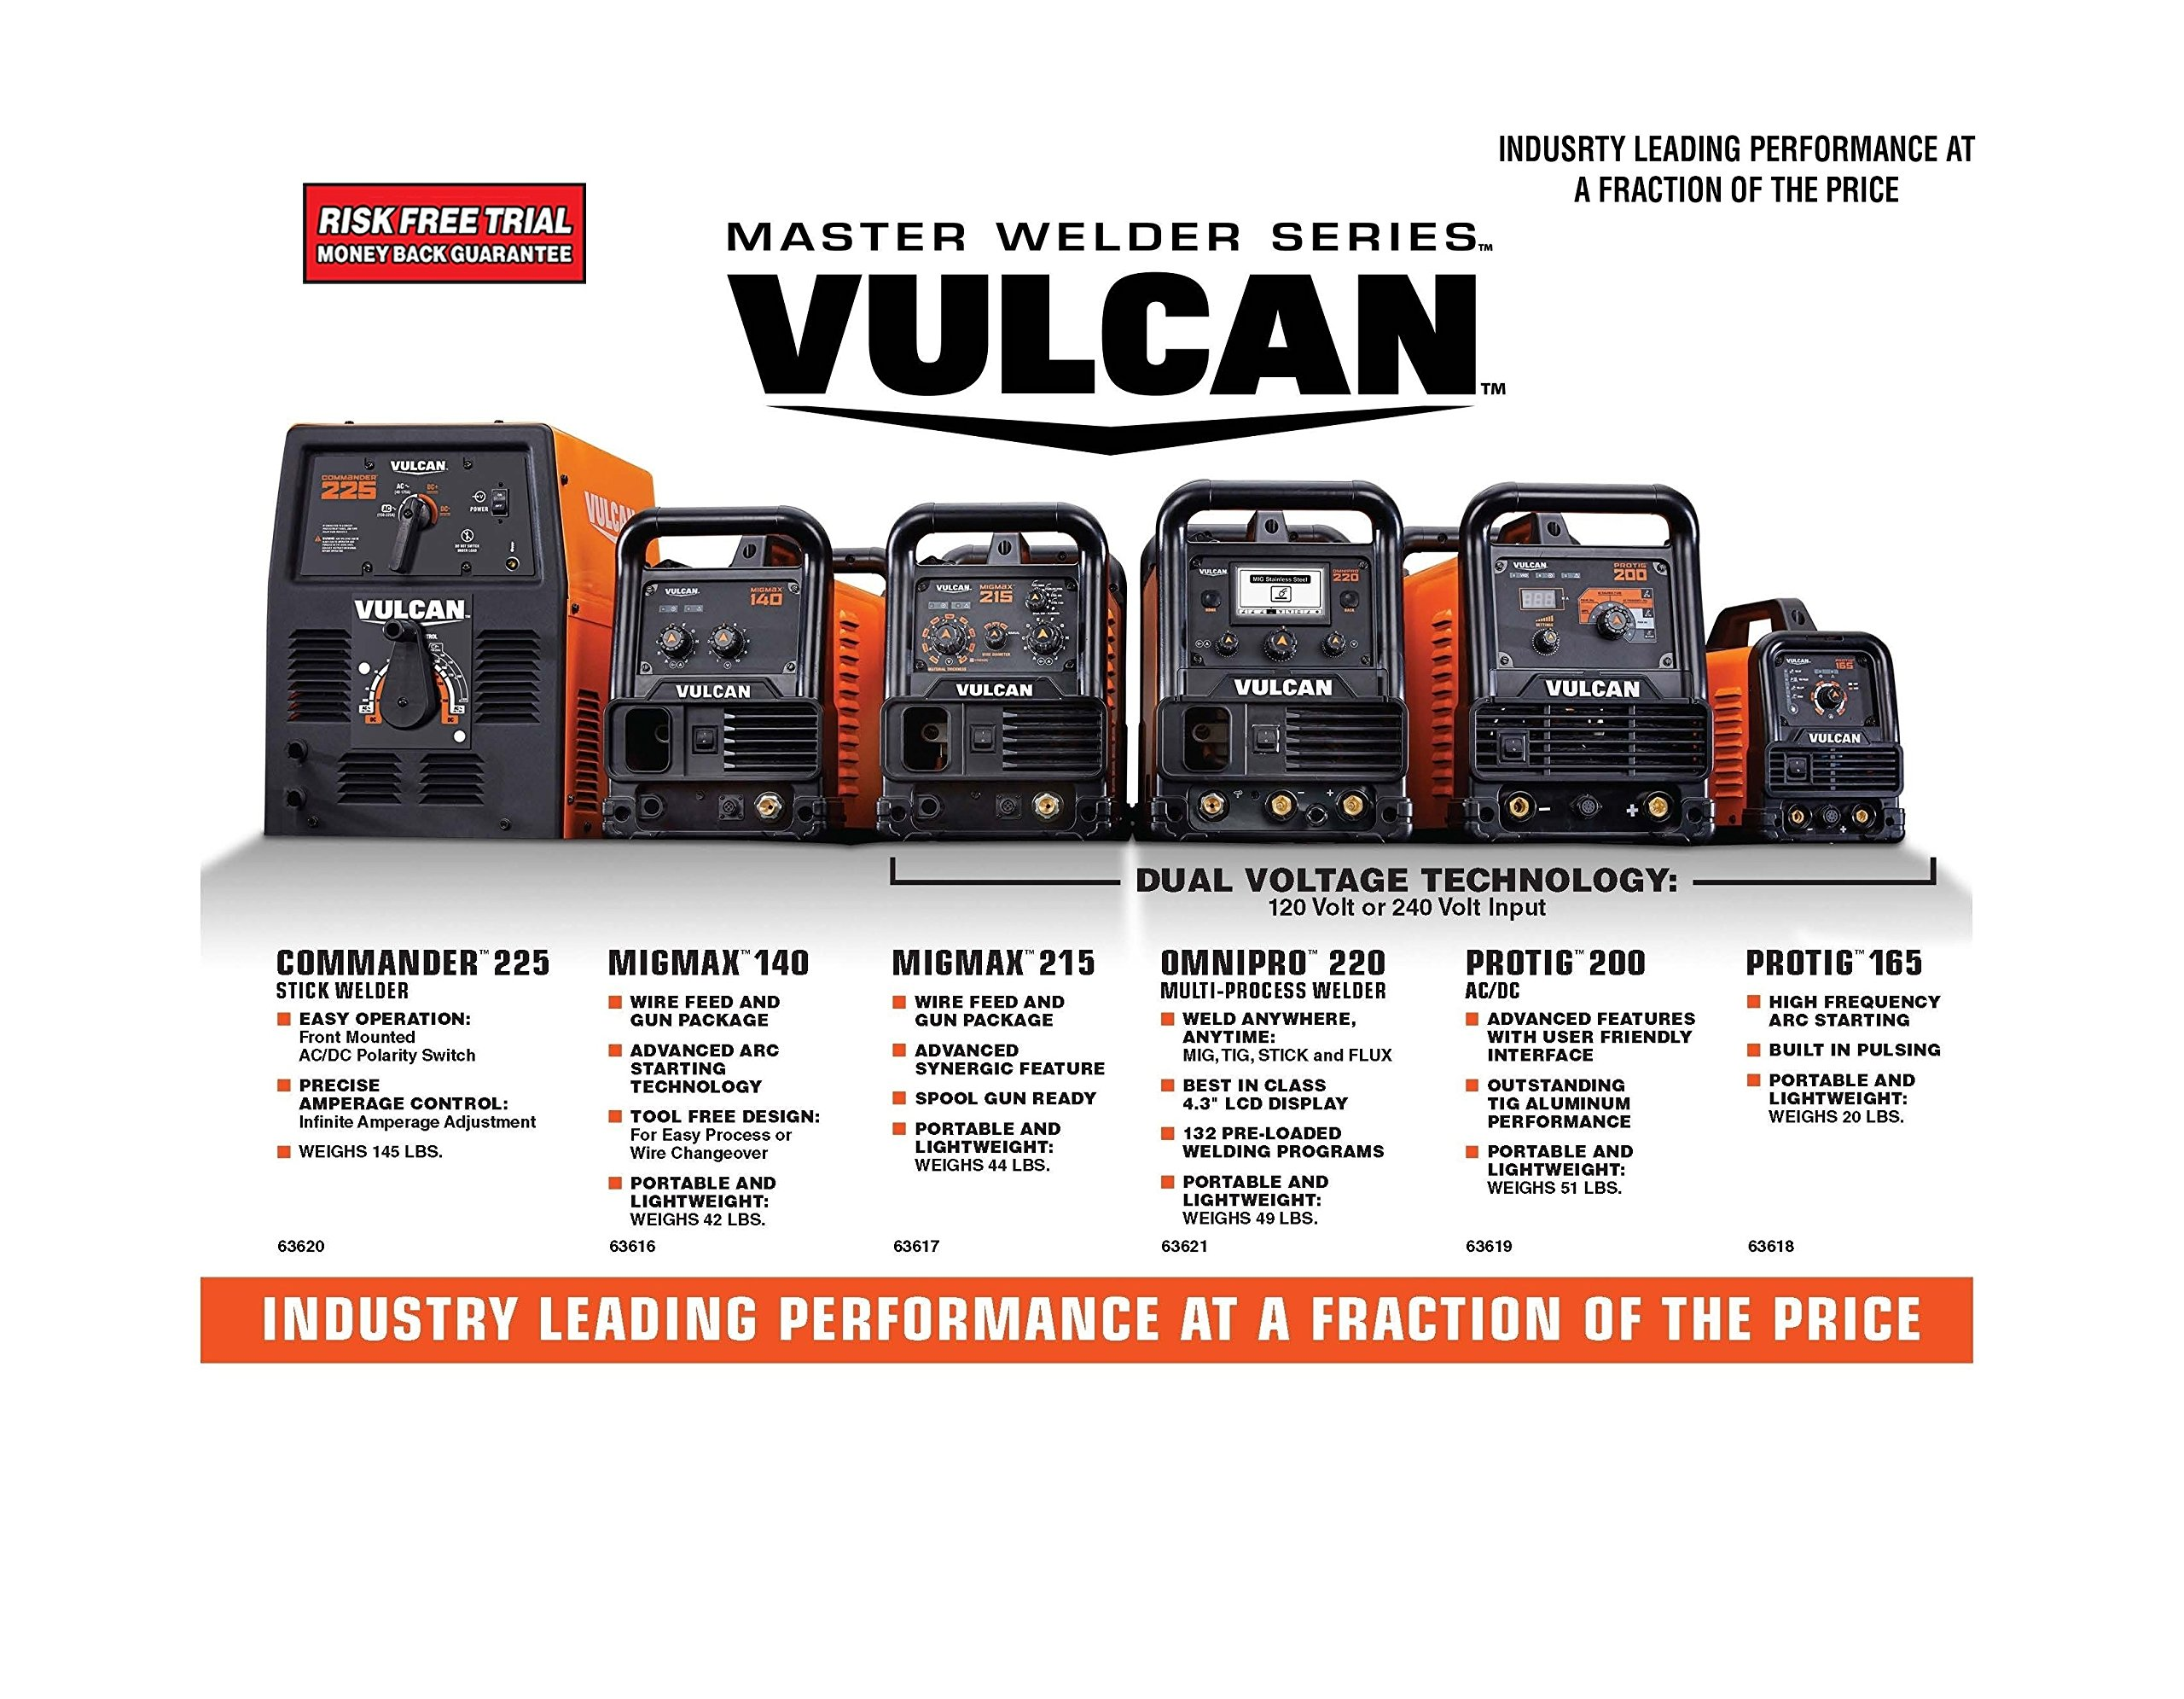 Vulcan OmniPro 220 Multiprocess Welder with 120/240 Volt Input by Vulcan (Image #5)